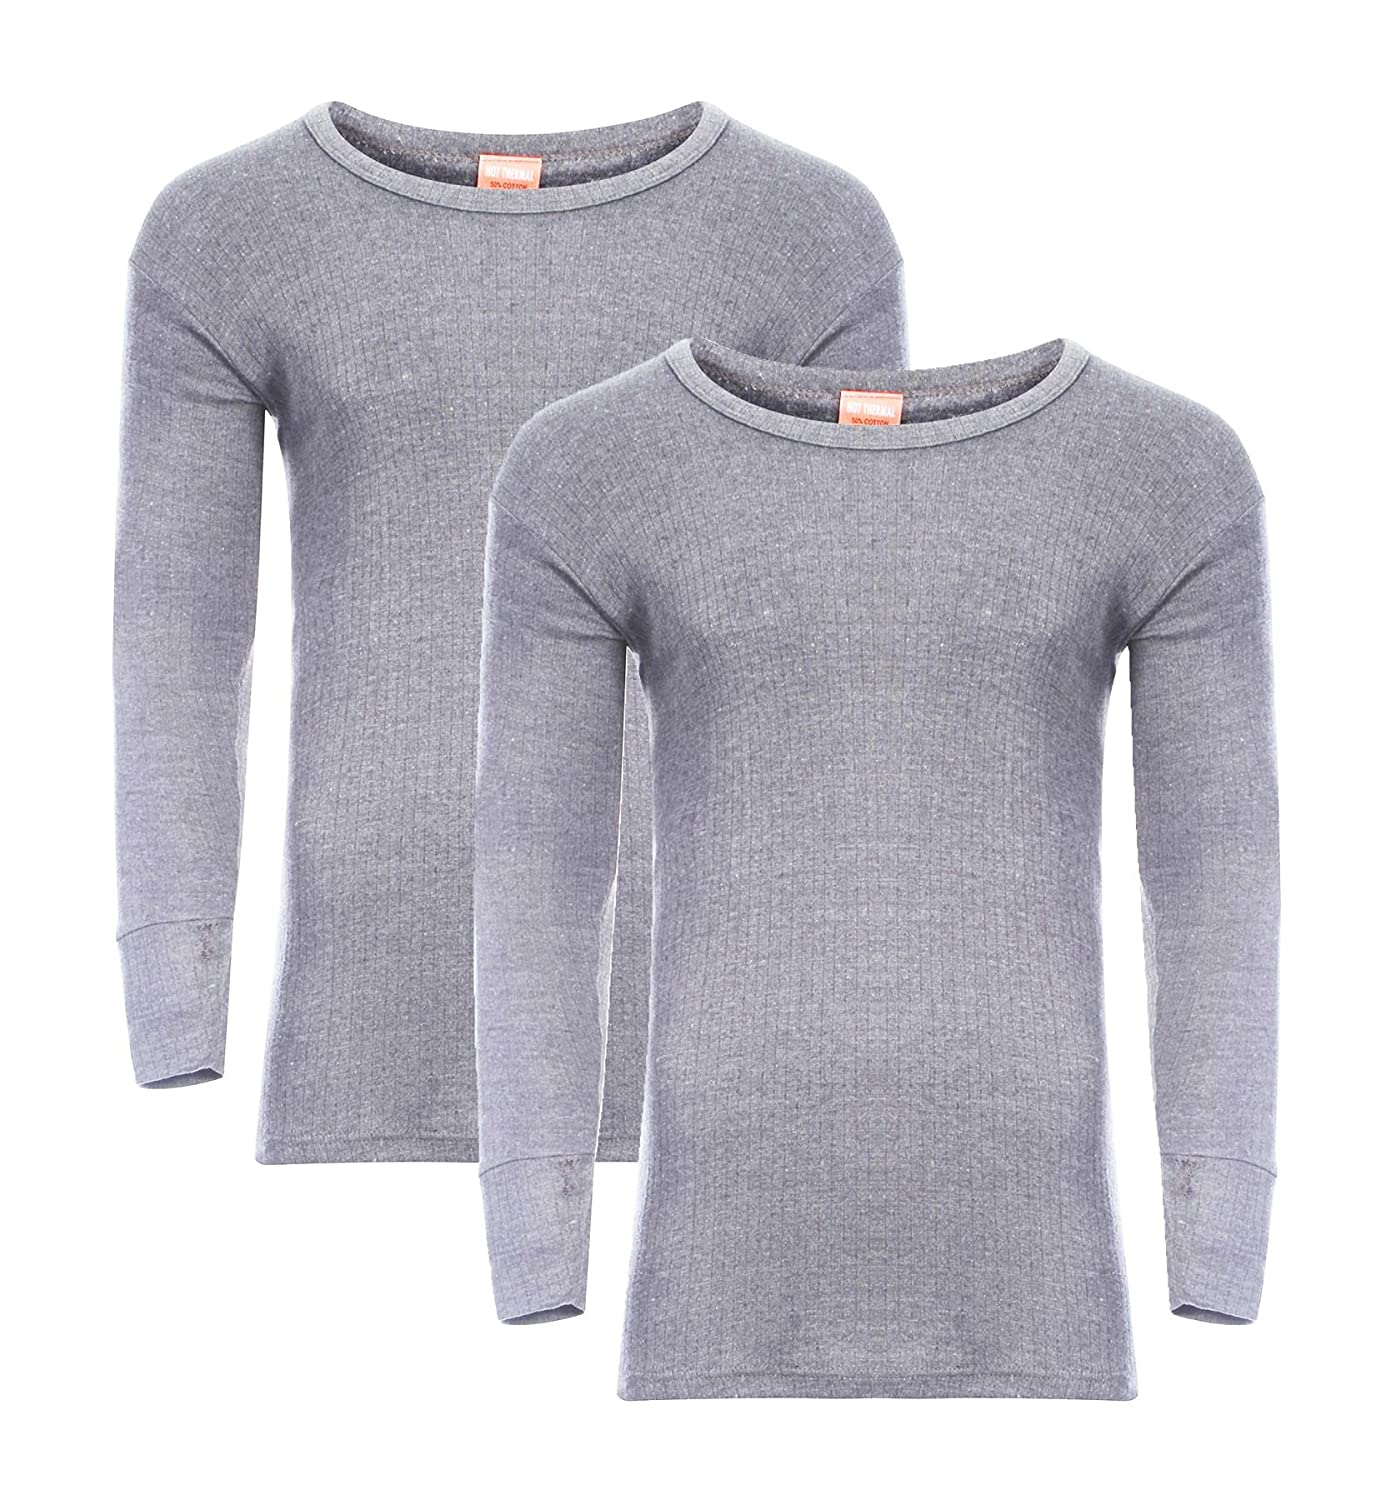 Heatwave® Pack Of 2 Men's Thermal Long Sleeve Top, Warm Underwear Baselayer, S M L XL XXL Thermals, Marl Grey RZK Textiles